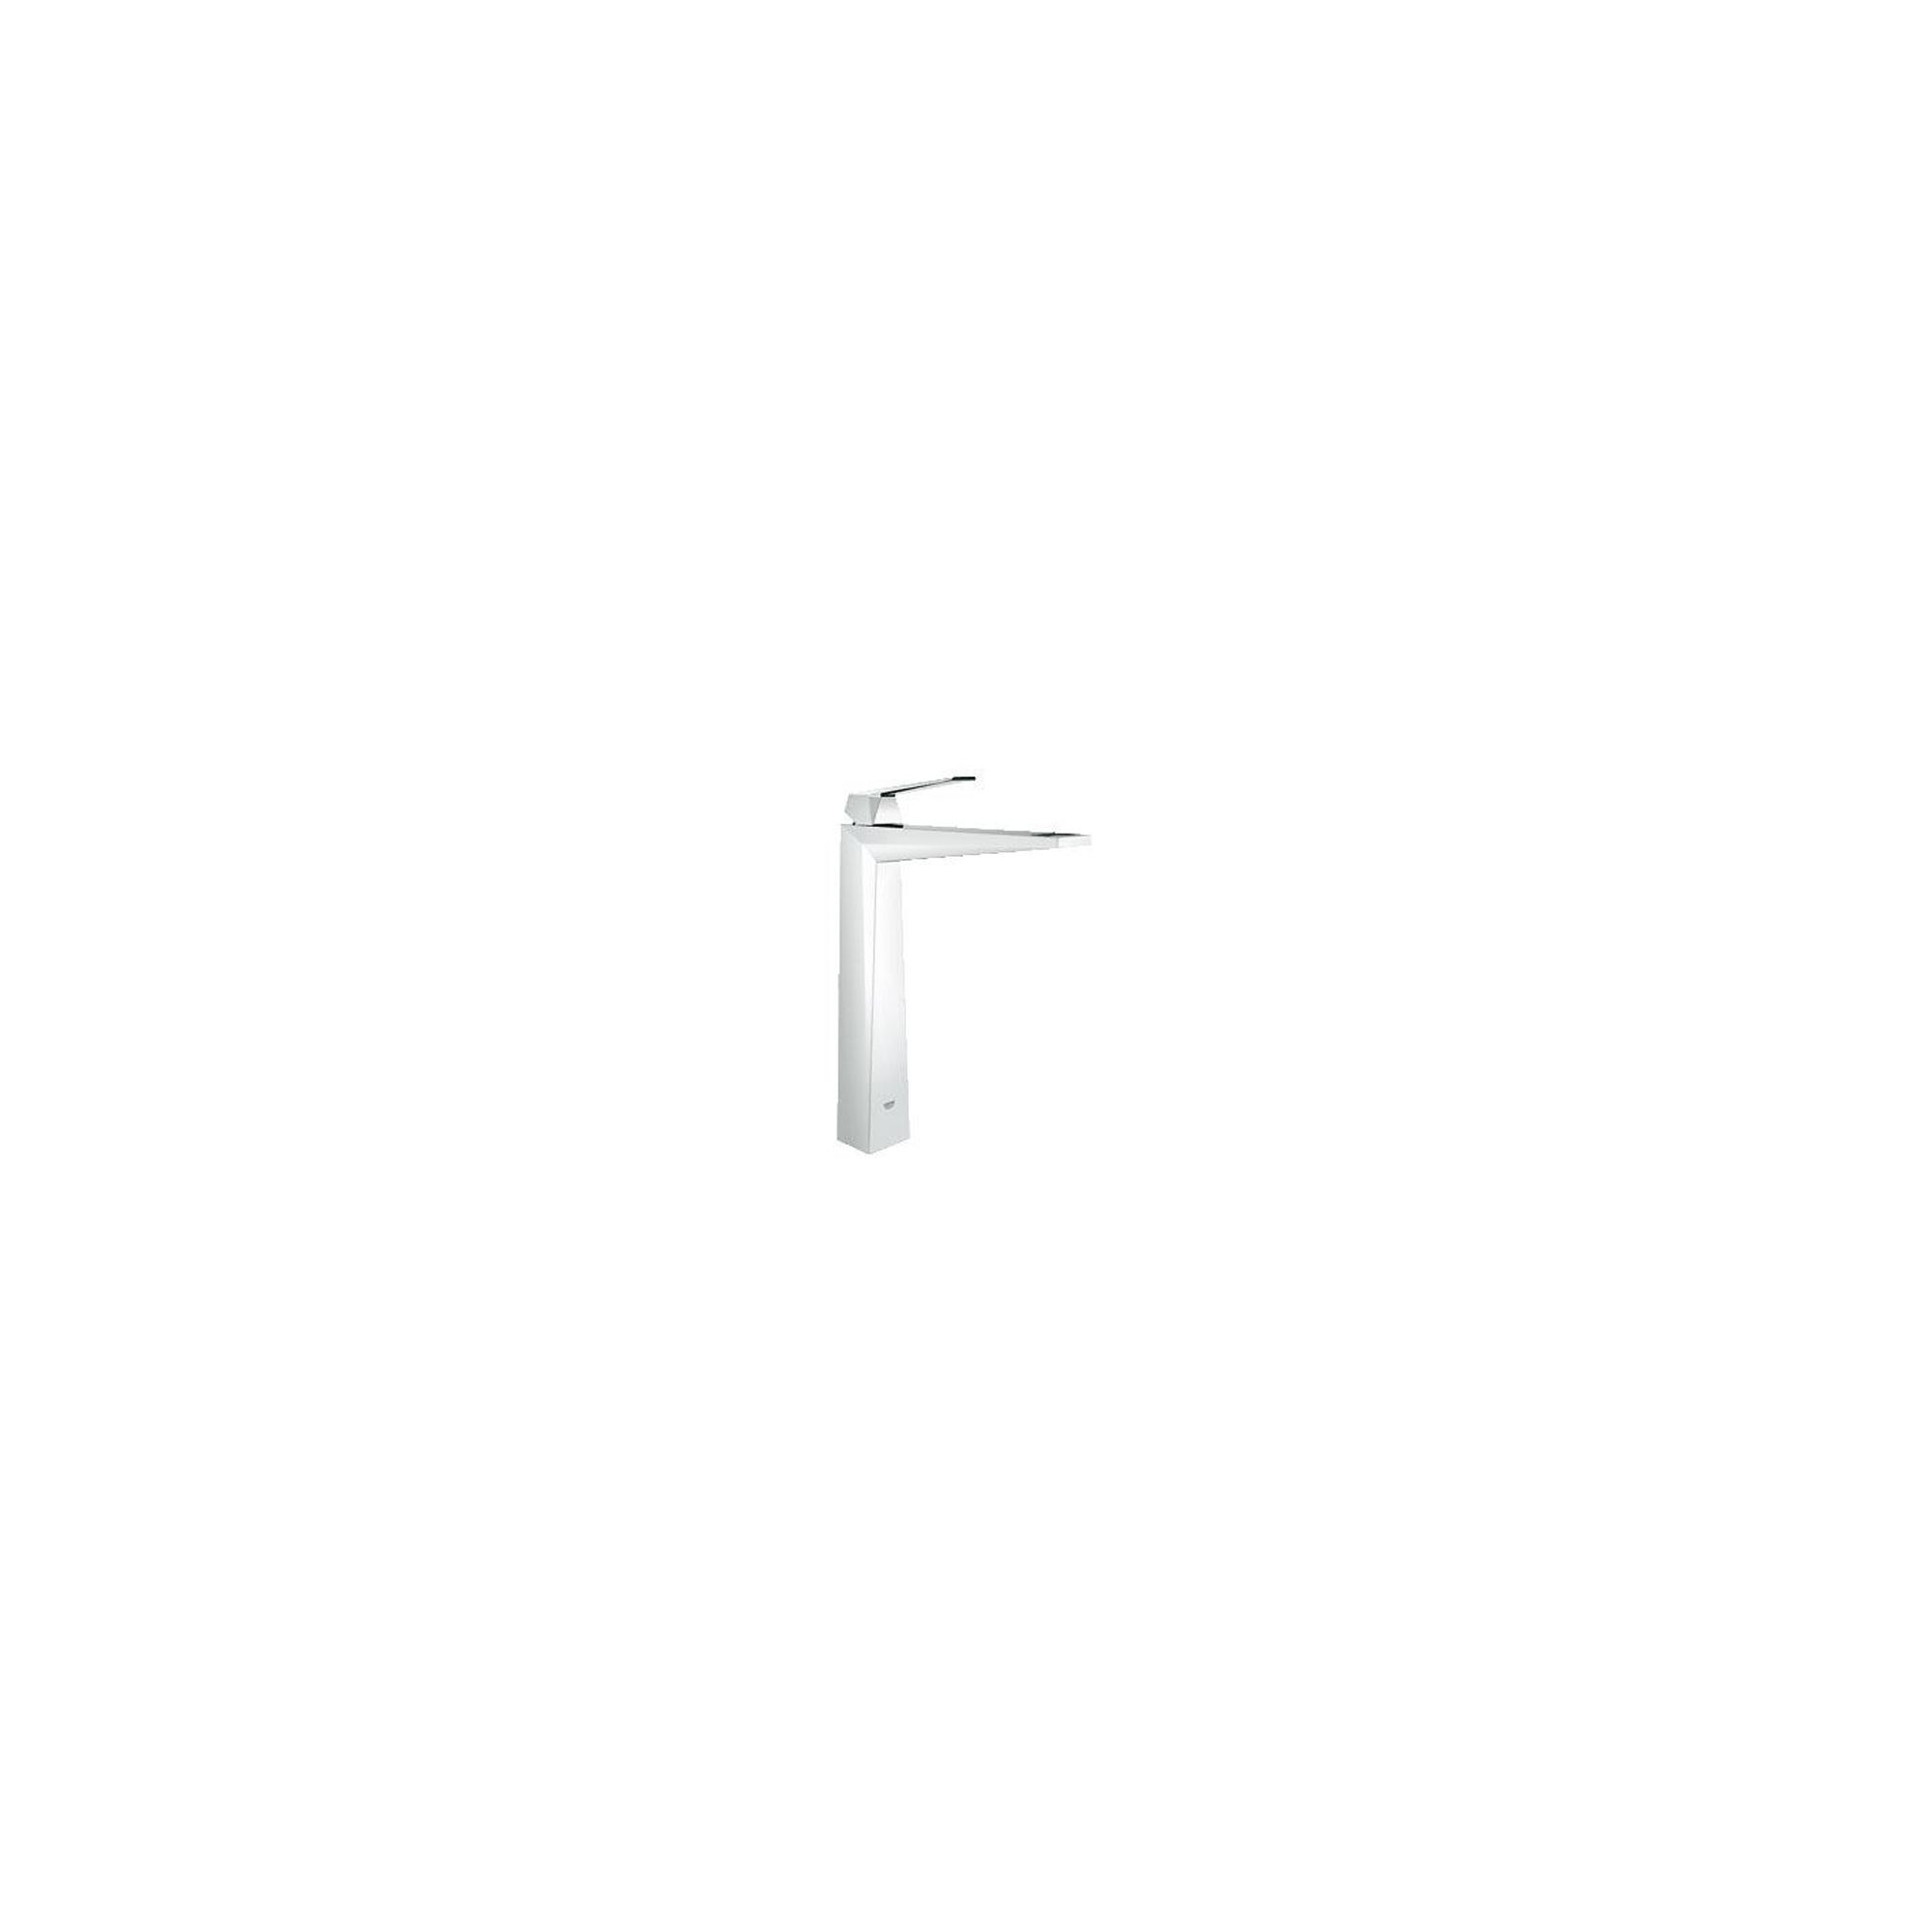 Grohe Allure Brilliant Mono Basin Mixer Tap, Floor Standing, Chrome at Tesco Direct